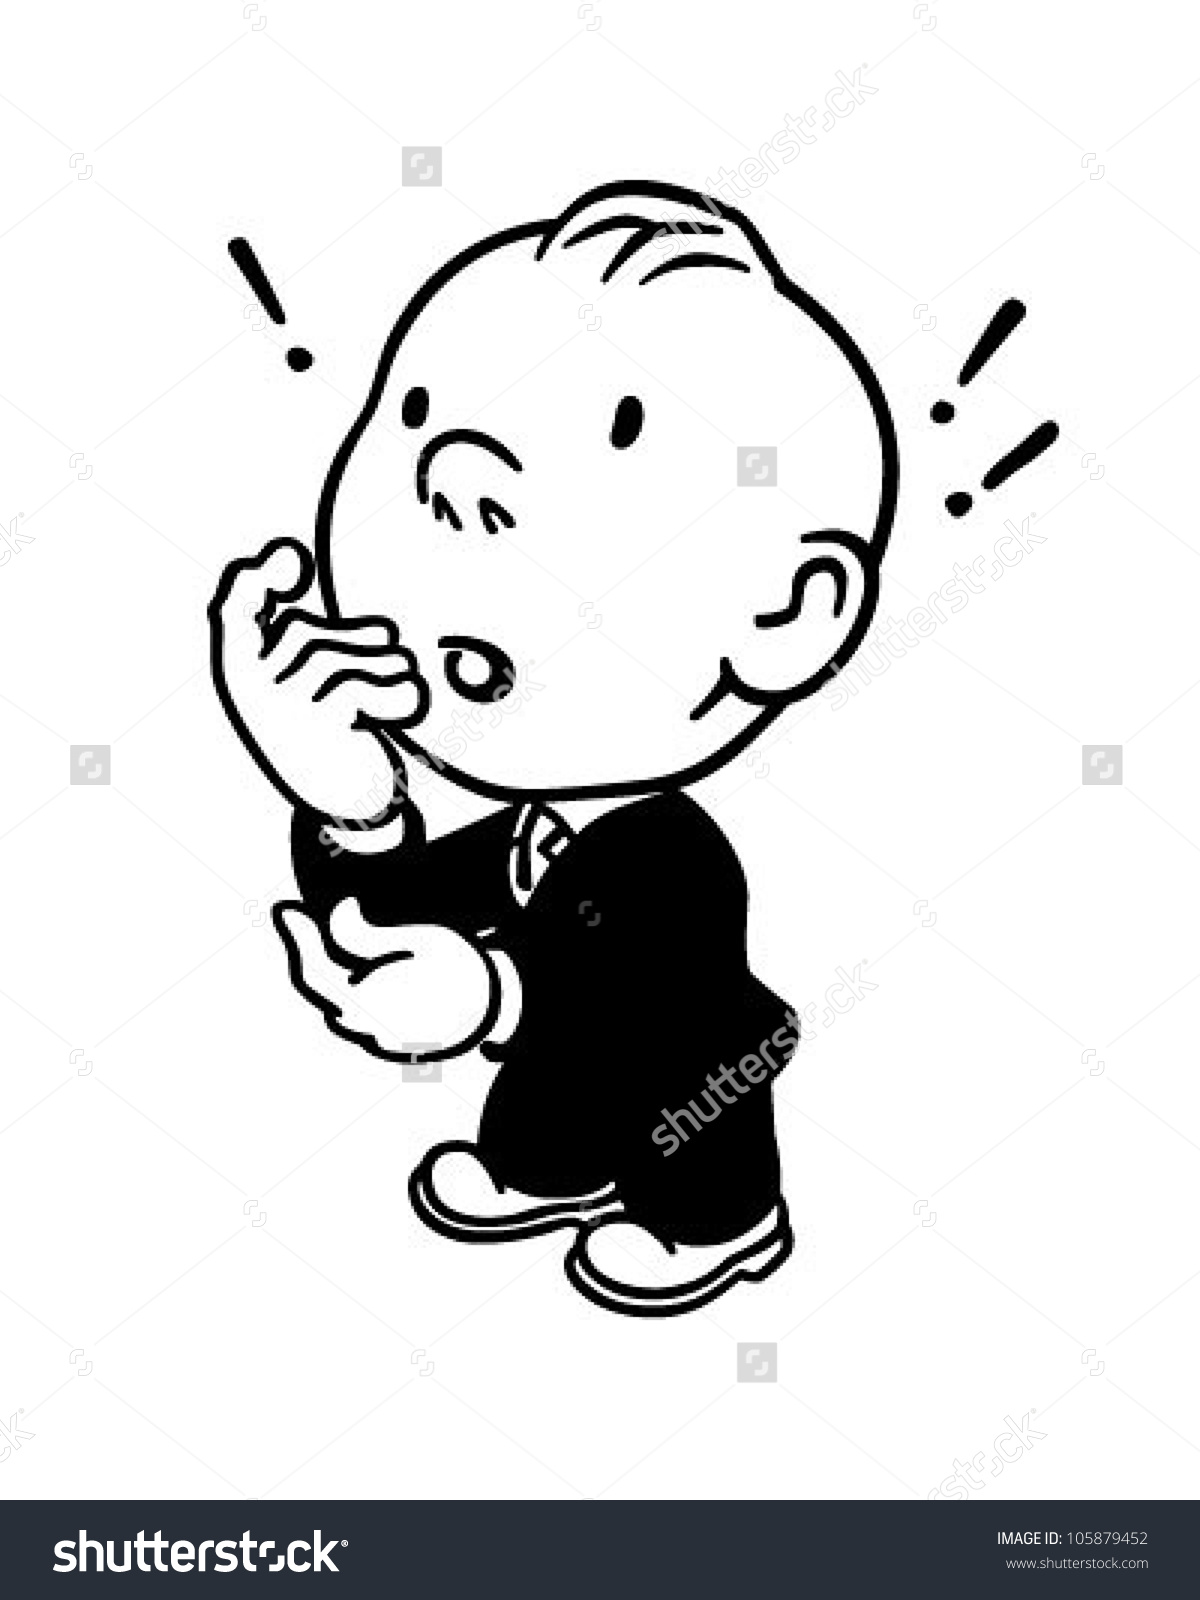 Puzzled clipart #13